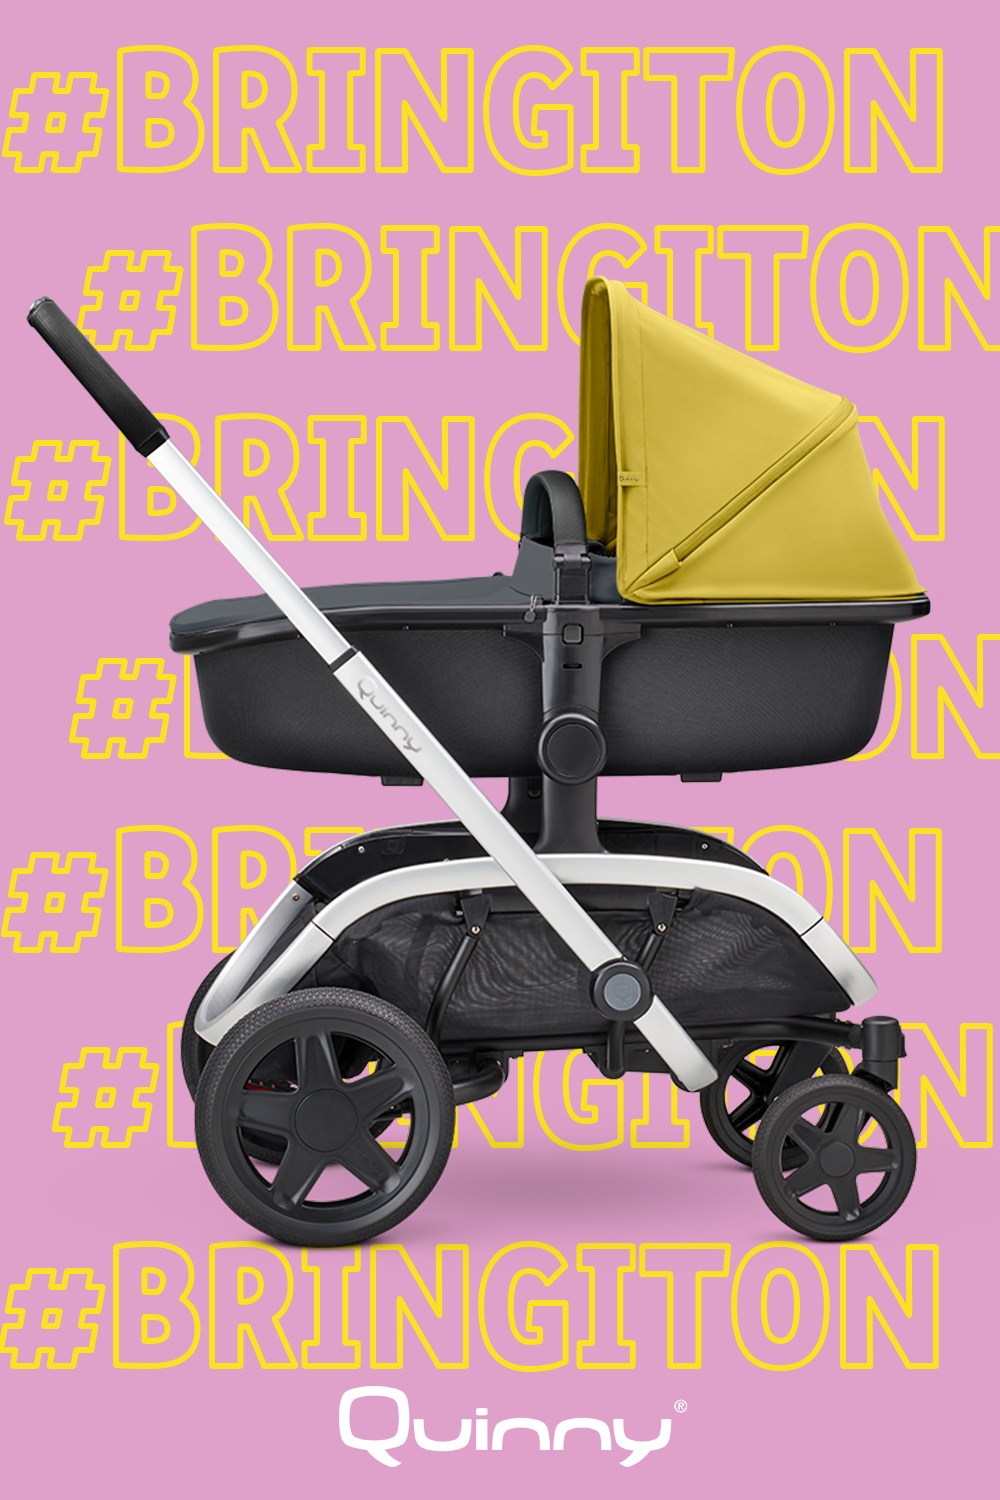 Quinny urban strollers and buggies Quinny Stroller